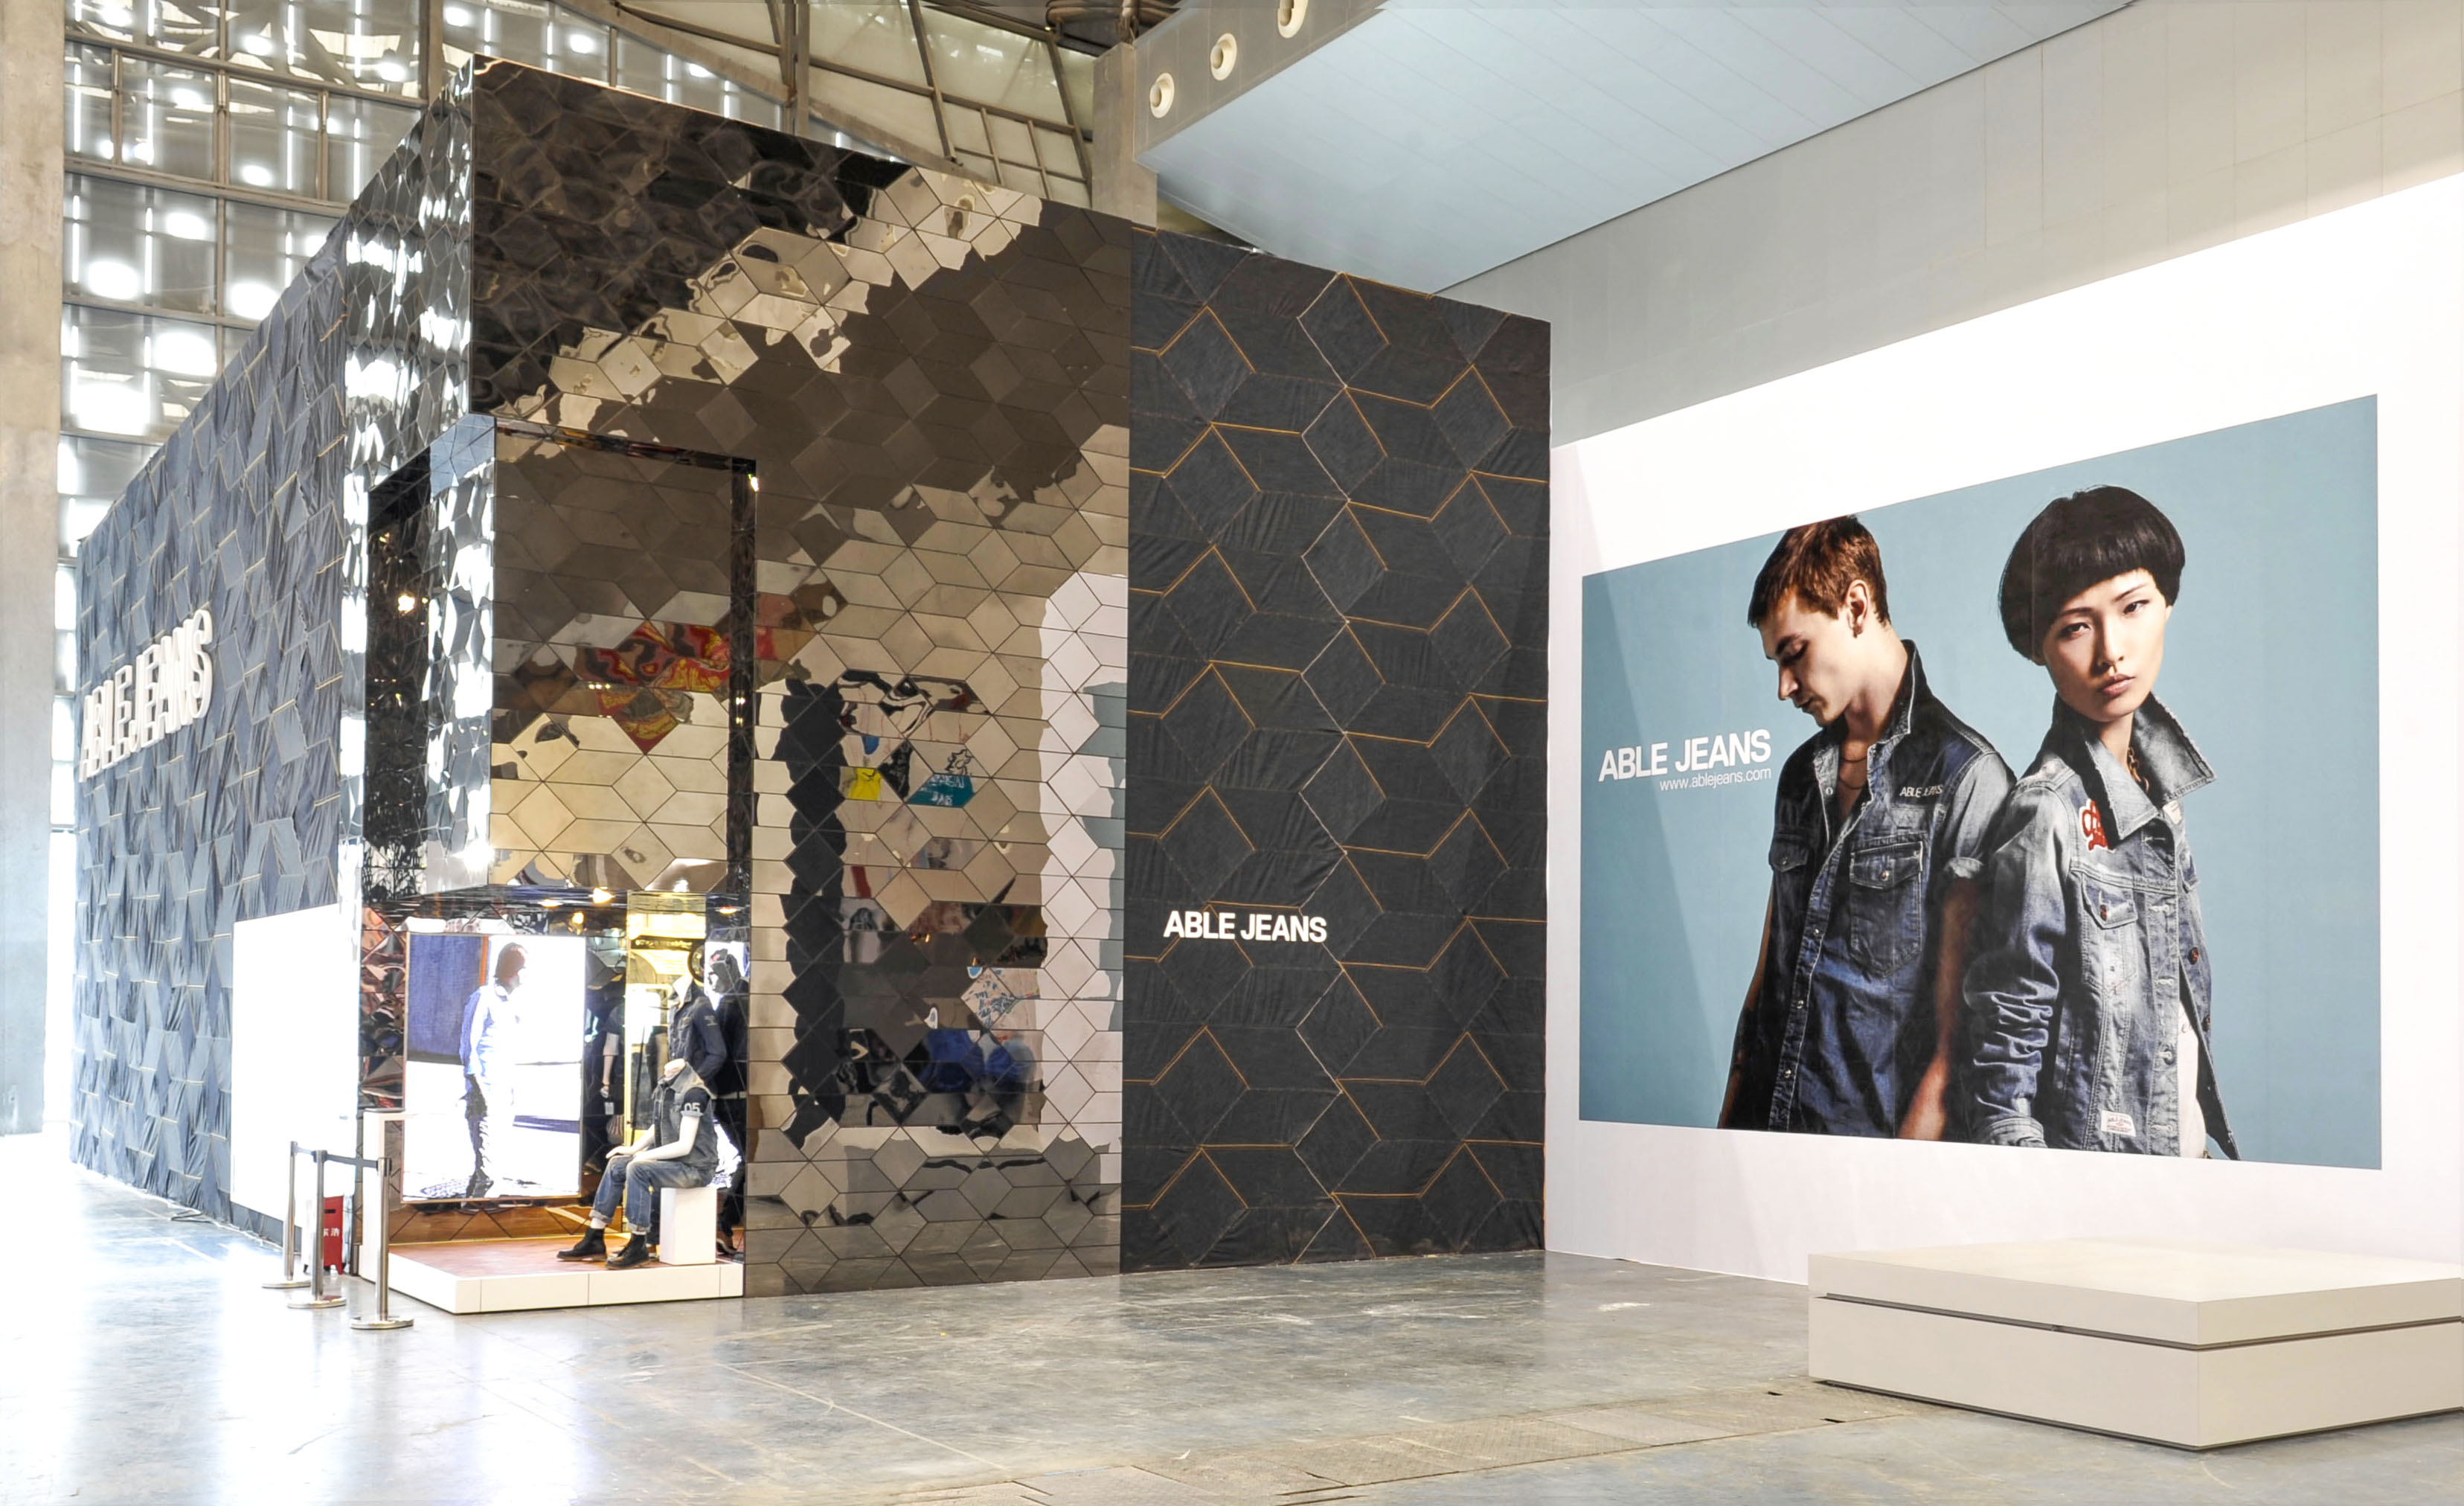 Able Jeans novomania fair booth Shanghai